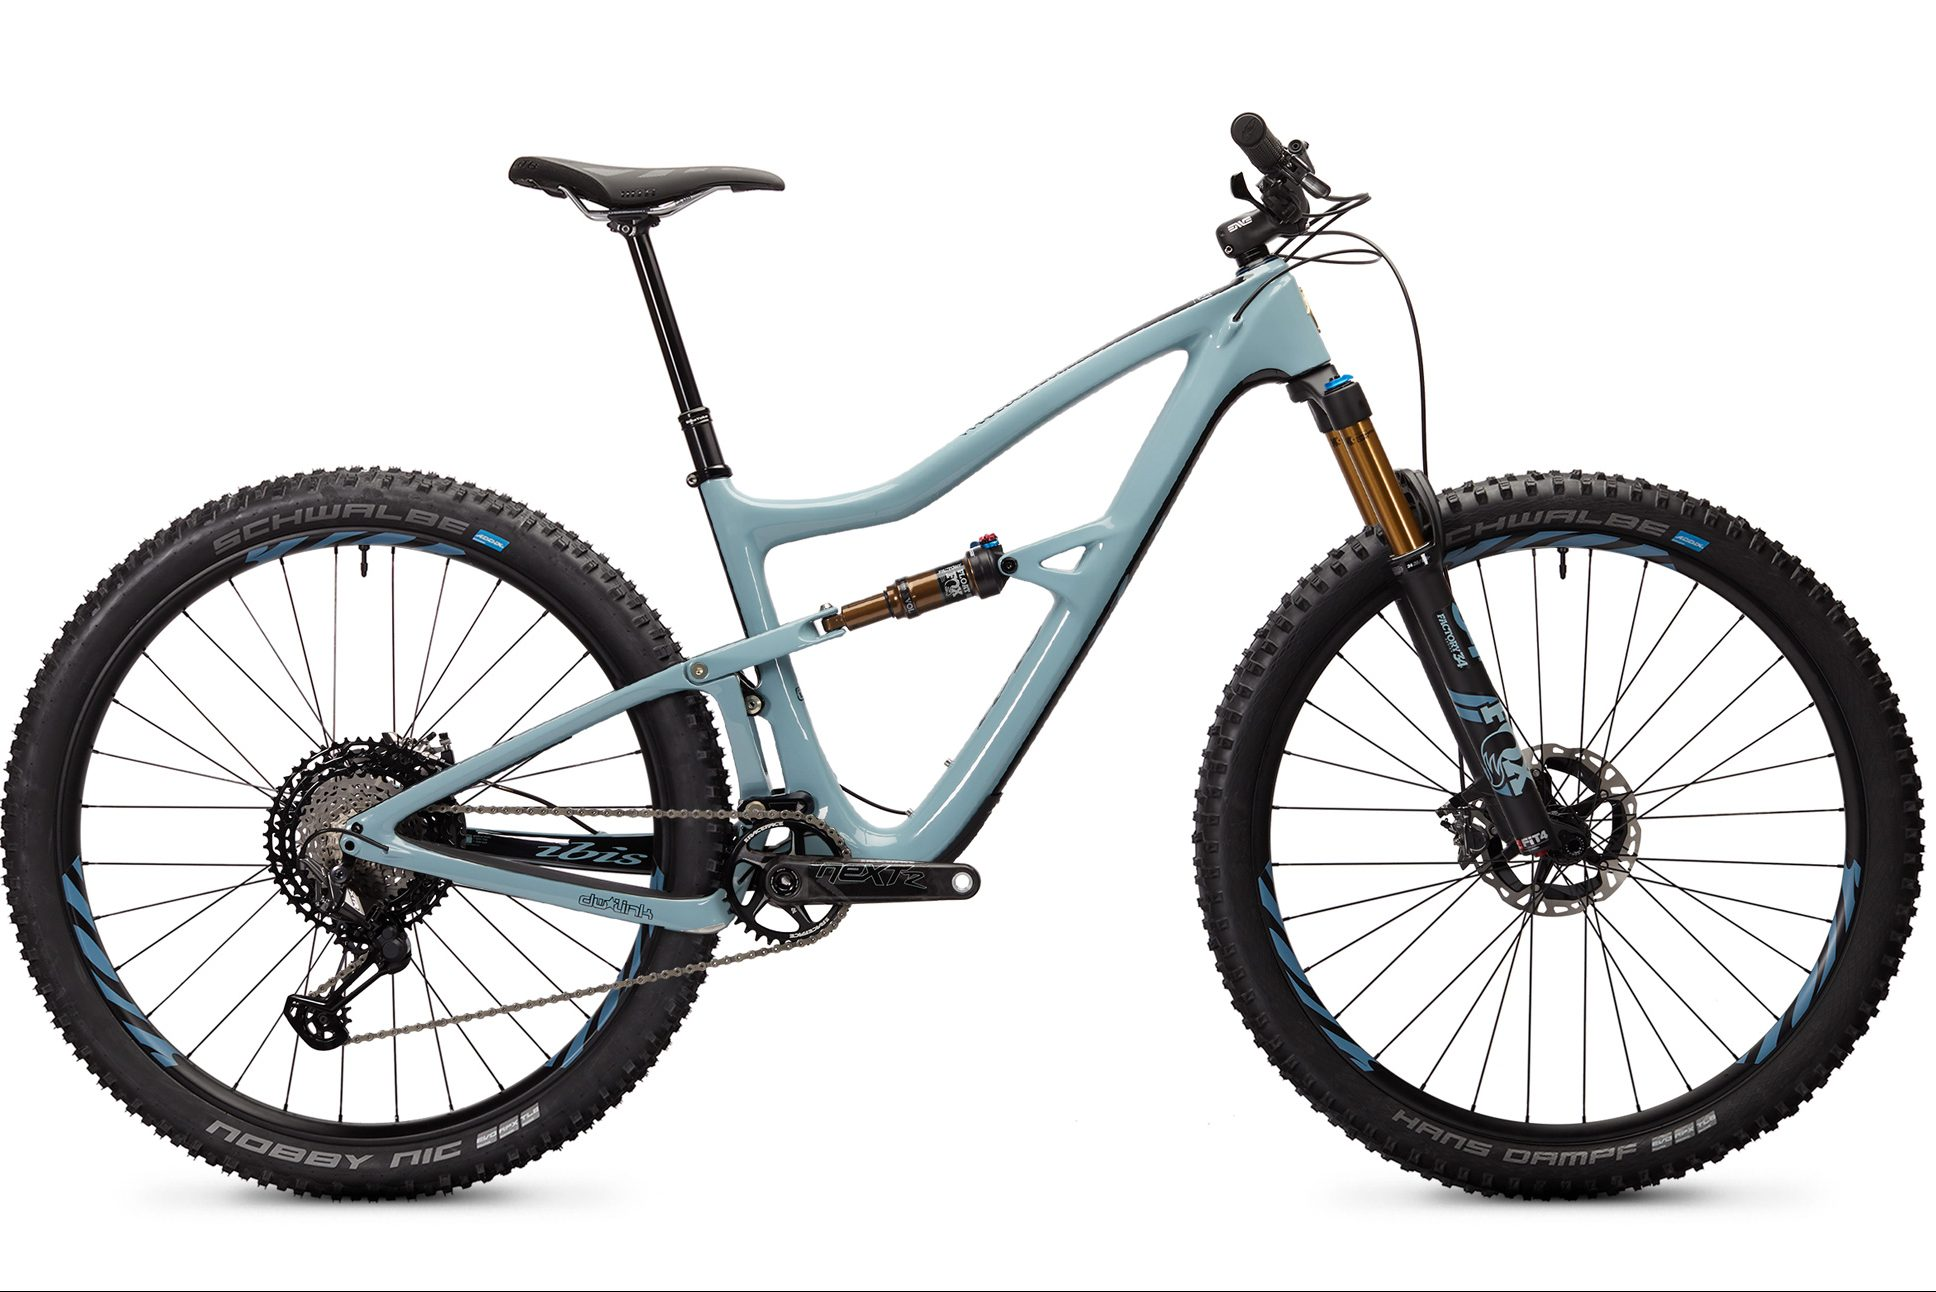 All new from-the-ground-up redesign of the Ibis Ripley 120mm 29er - MBR